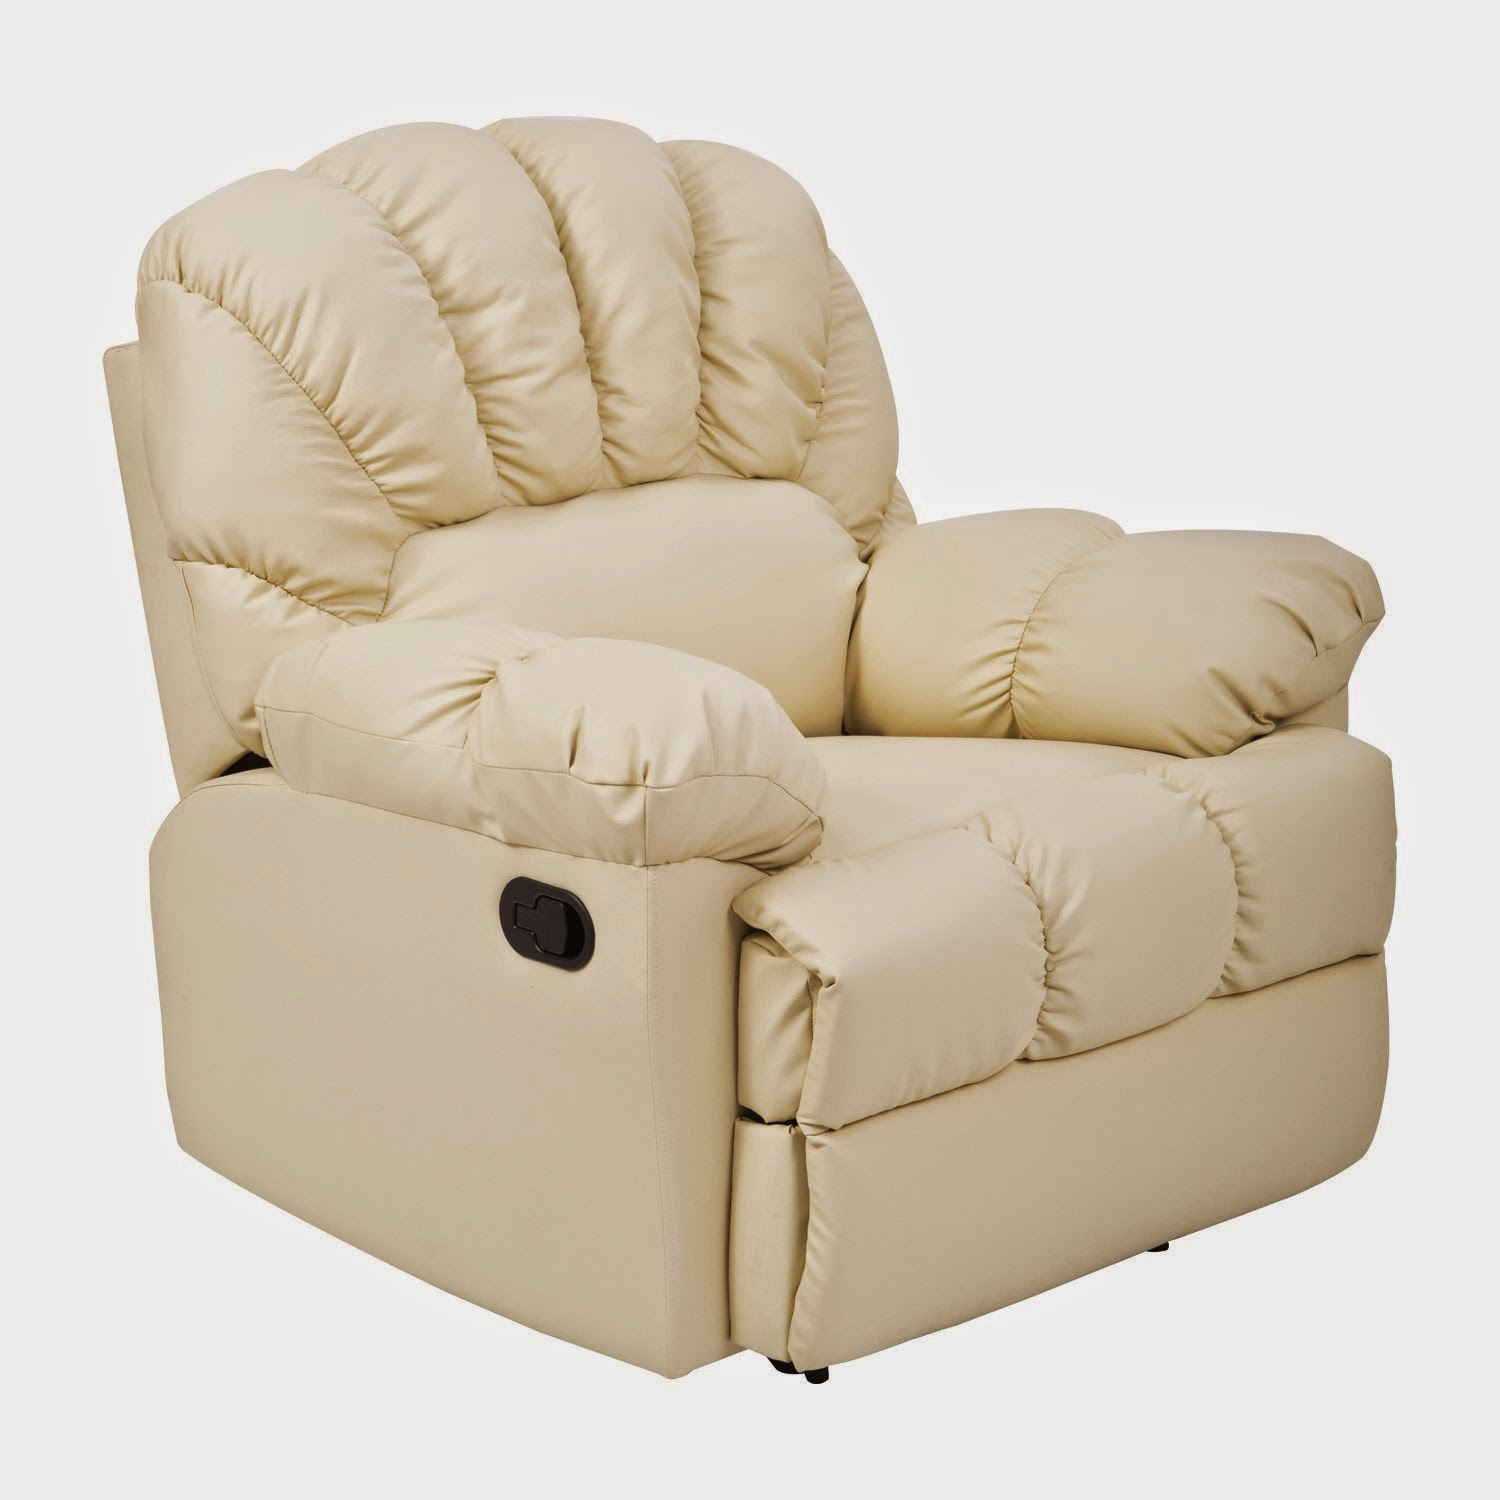 Cheap Recliner Sofas For Sale Black Leather Reclining: Cheap Reclining Sofas Sale: Cream Leather Recliner Corner Sofa